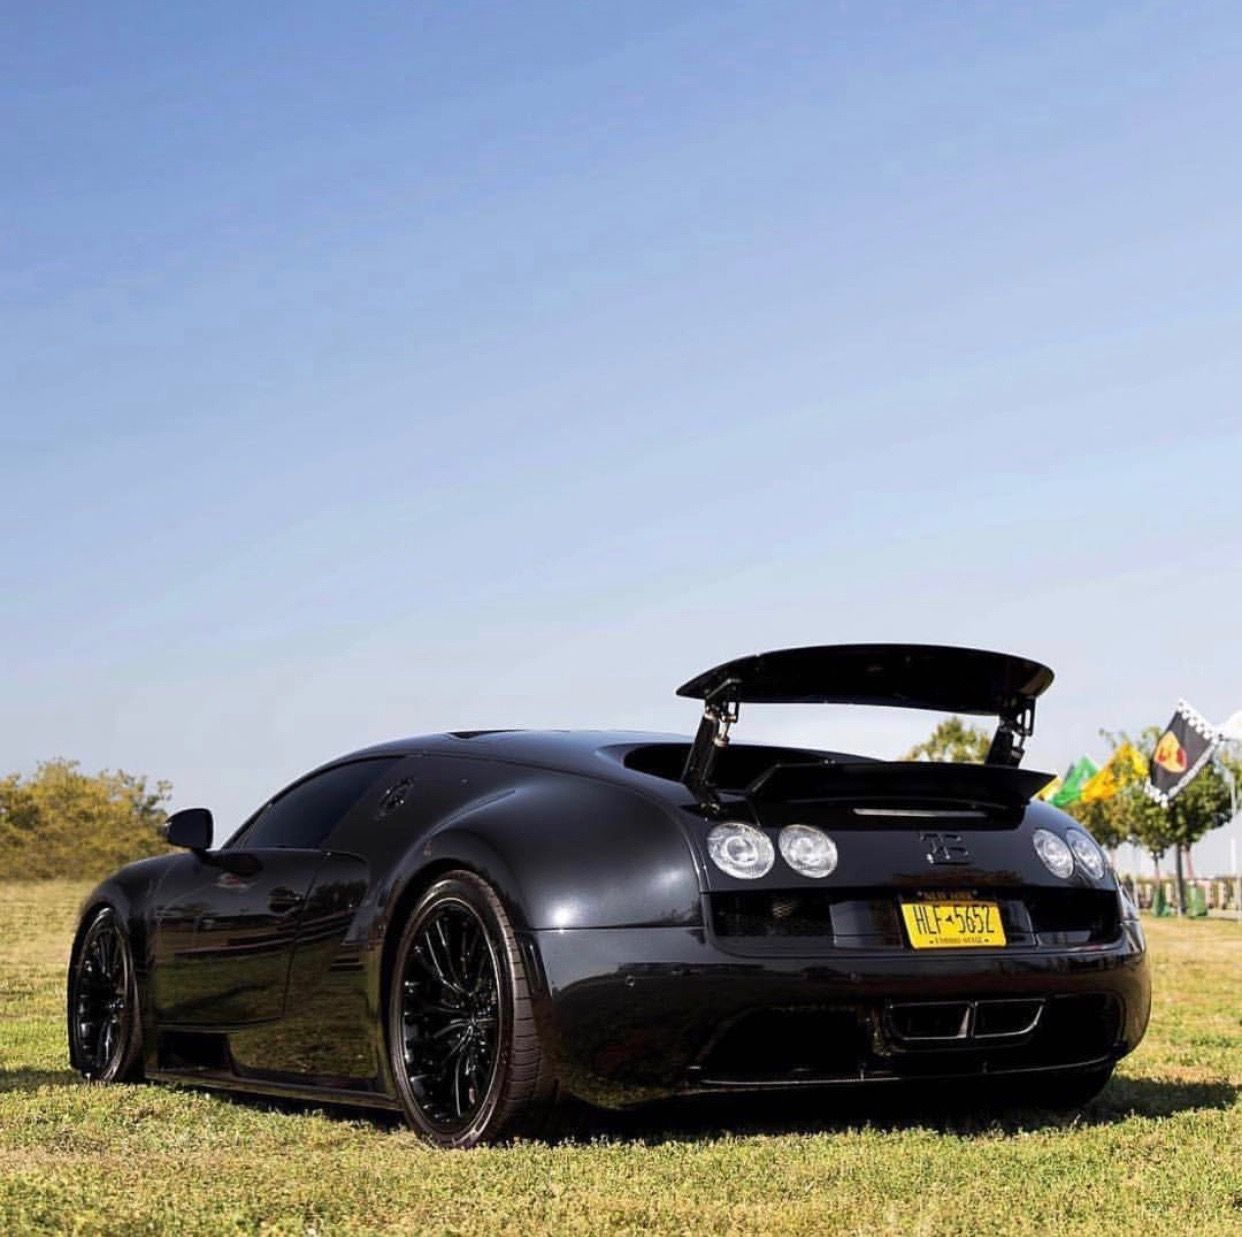 Bugatti Veyron Super Sport painted in Black Photo taken by ...